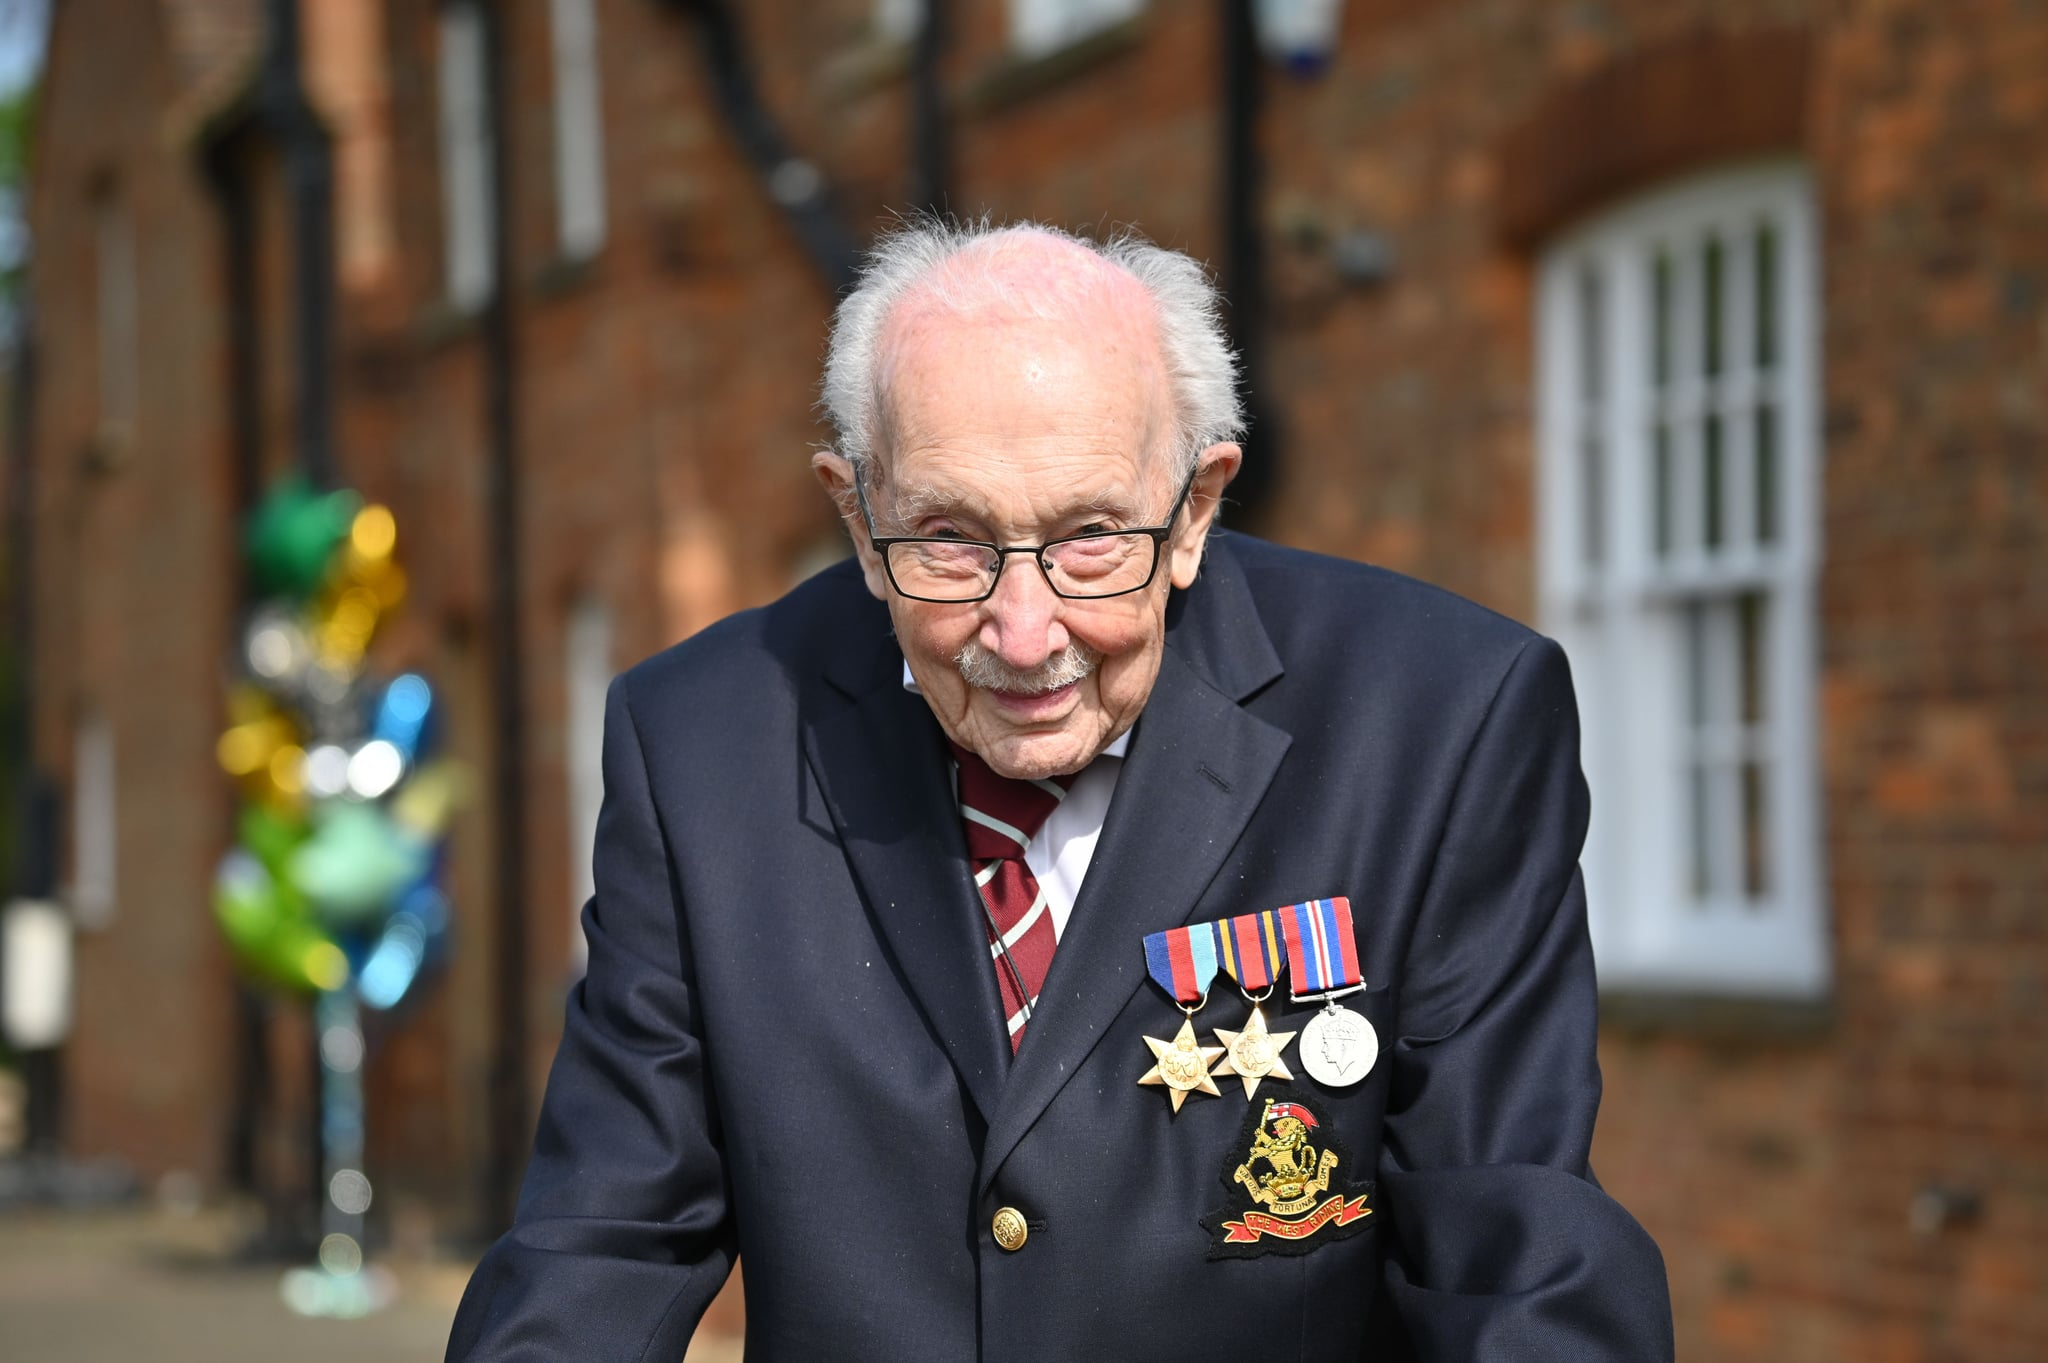 British World War II veteran Captain Tom Moore, 99, poses doing a lap of his garden in the village of Marston Moretaine, 50 miles north of London, on April 16, 2020. - A 99-year-old British World War II veteran Captain Tom Moore on April 16 completed 100 laps of his garden in a fundraising challenge for healthcare staff that has